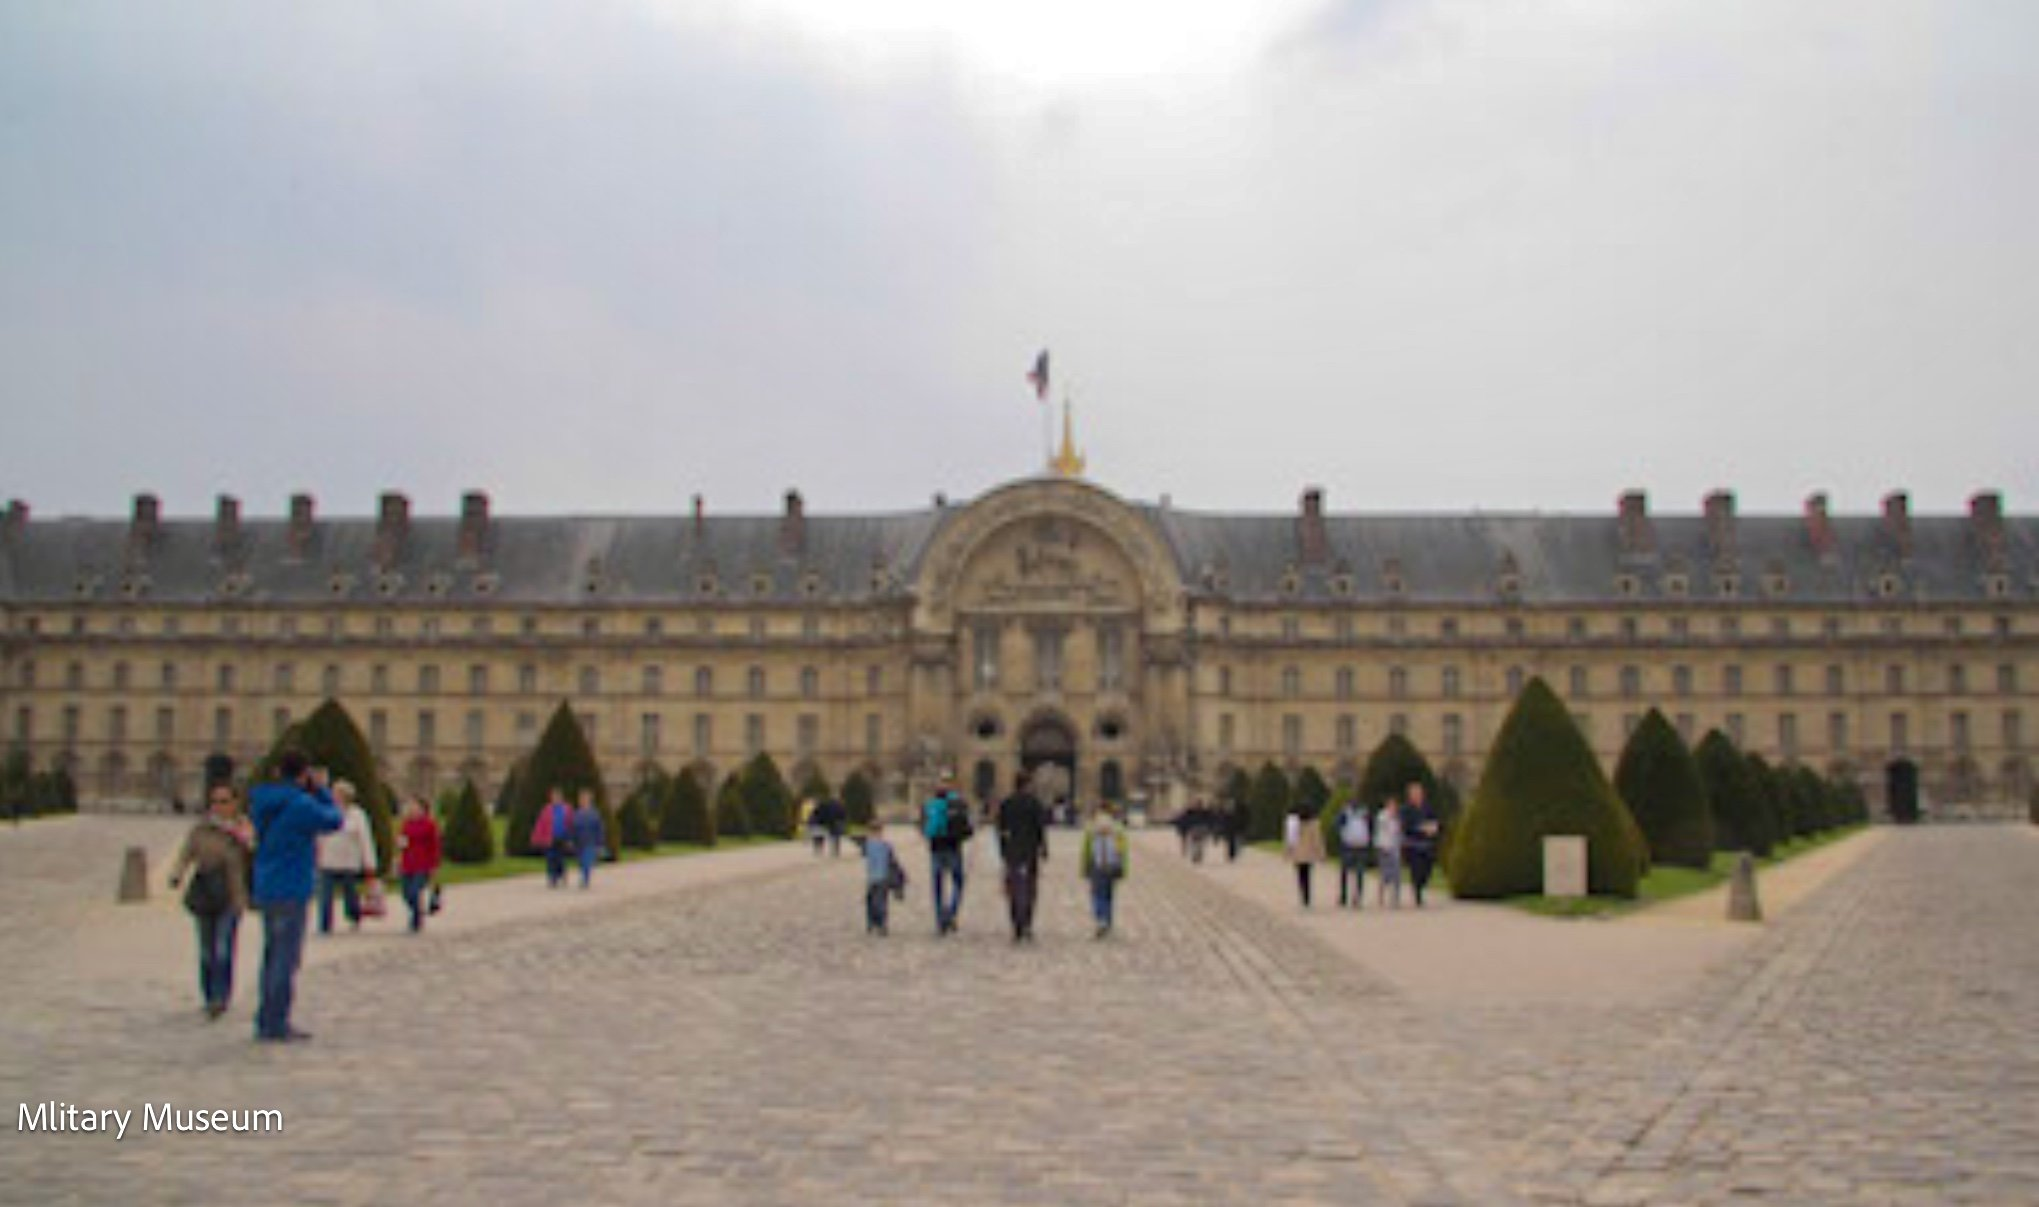 Les Invalides includes museum on military history, hospital/retirement home military veterans